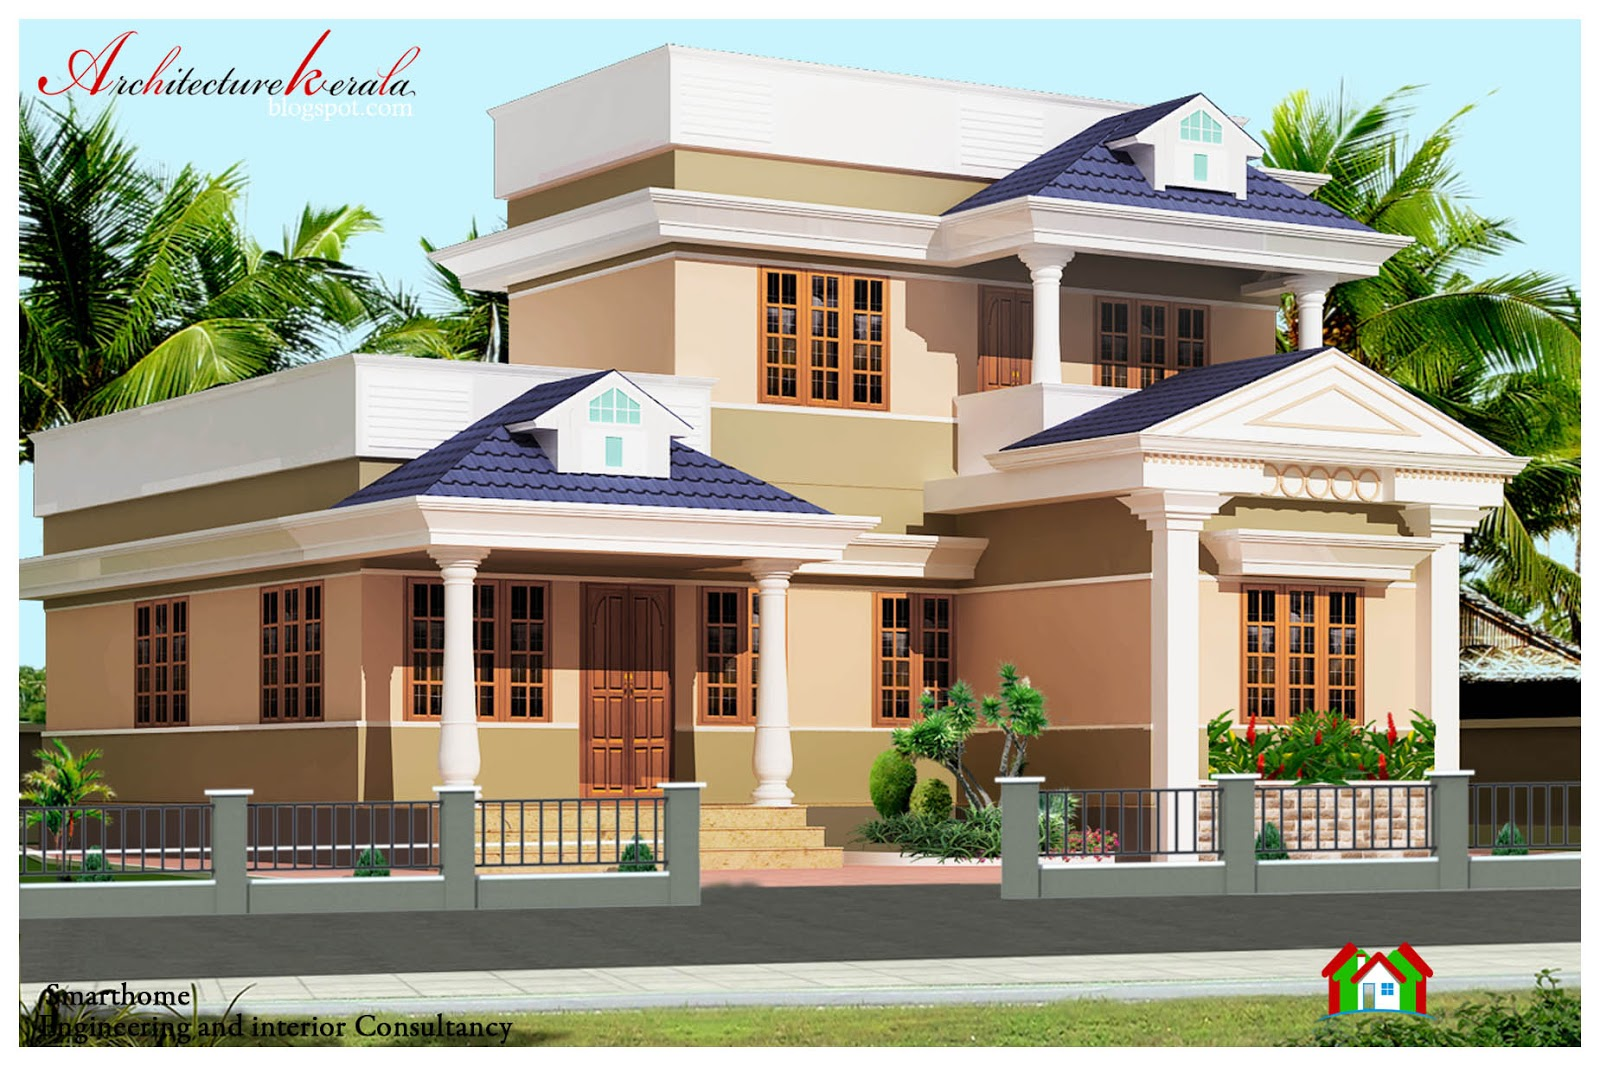 Architecture kerala 1000 sq ft kerala style house plan for House plan kerala style free download